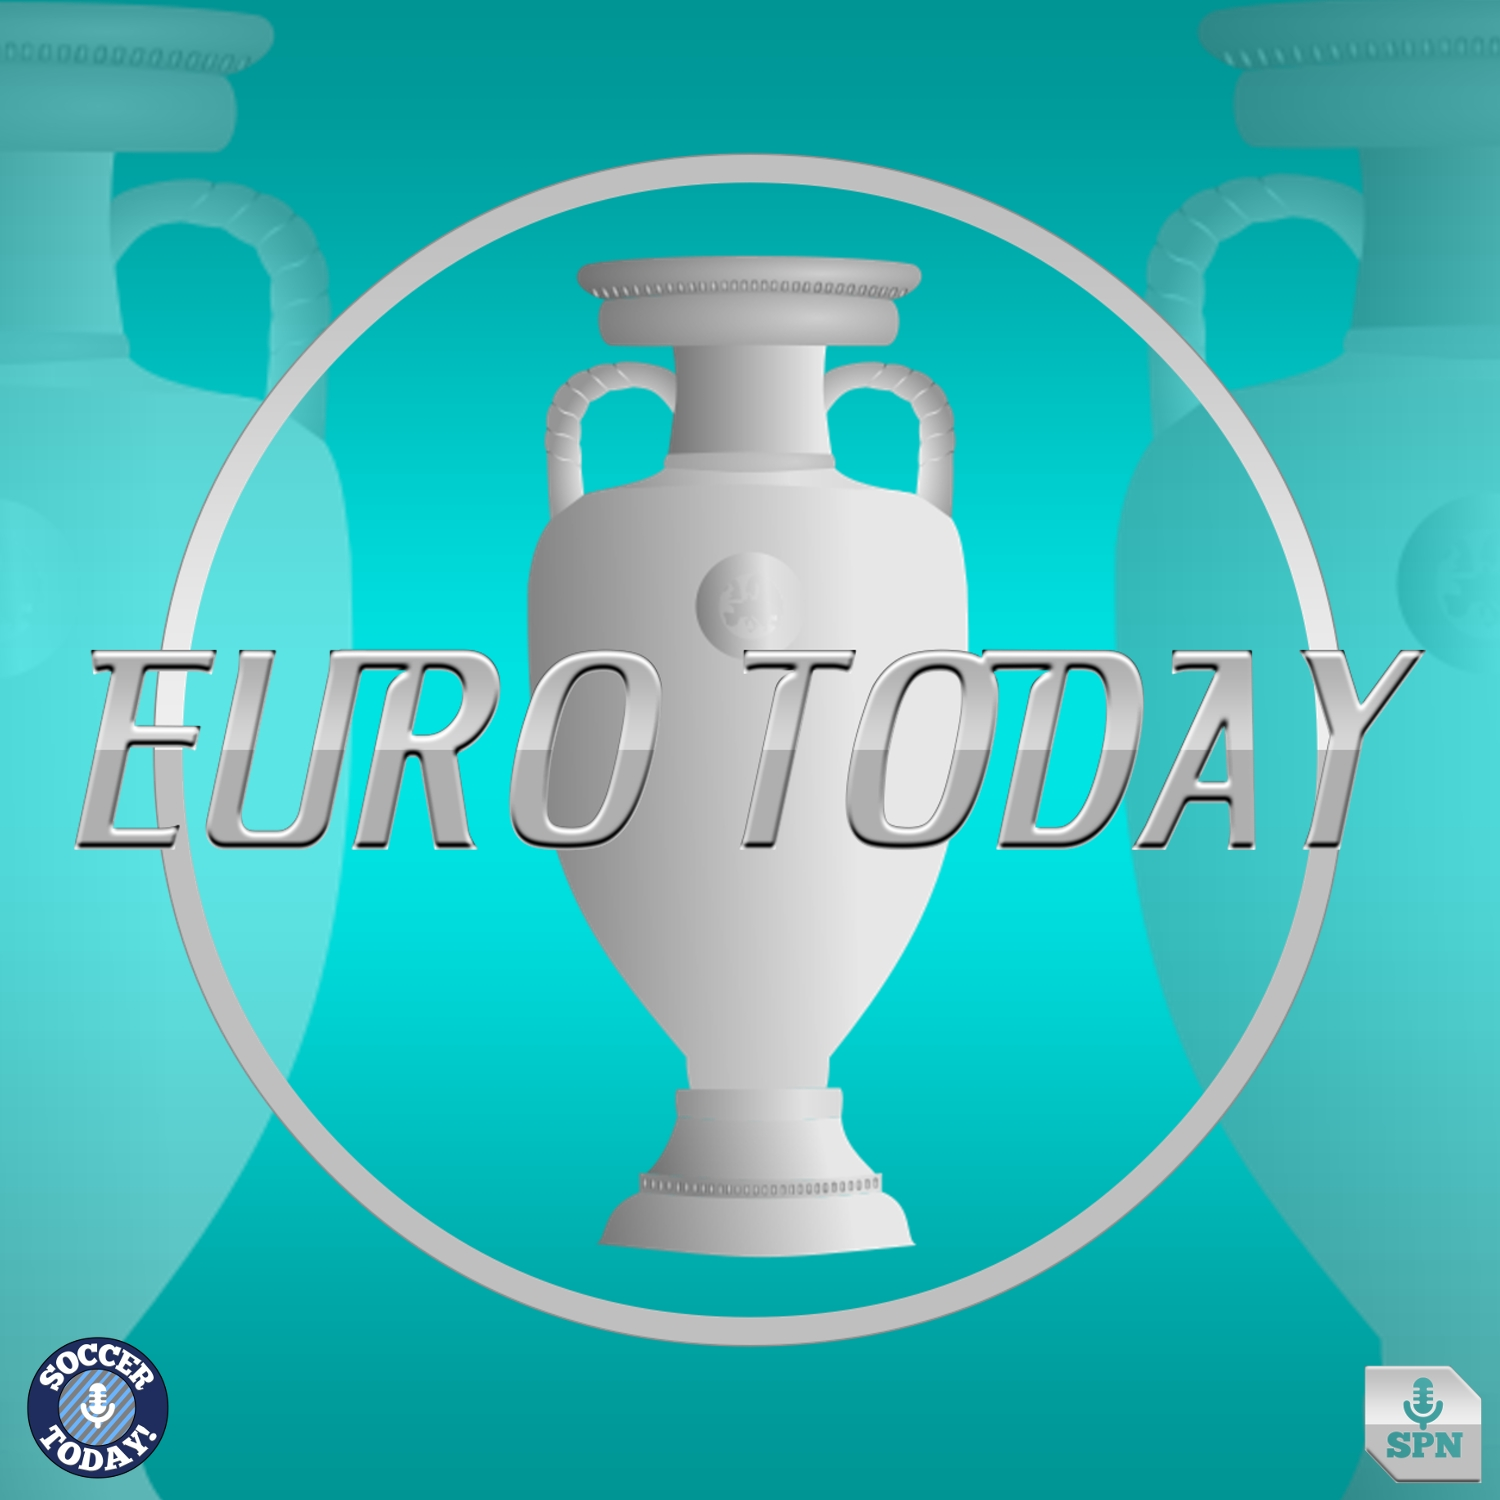 Euro Today with Kevin Laramee and Duane Rollins - Quarter-Finals Review and Chris Armas Has Been Relieved of his Duties